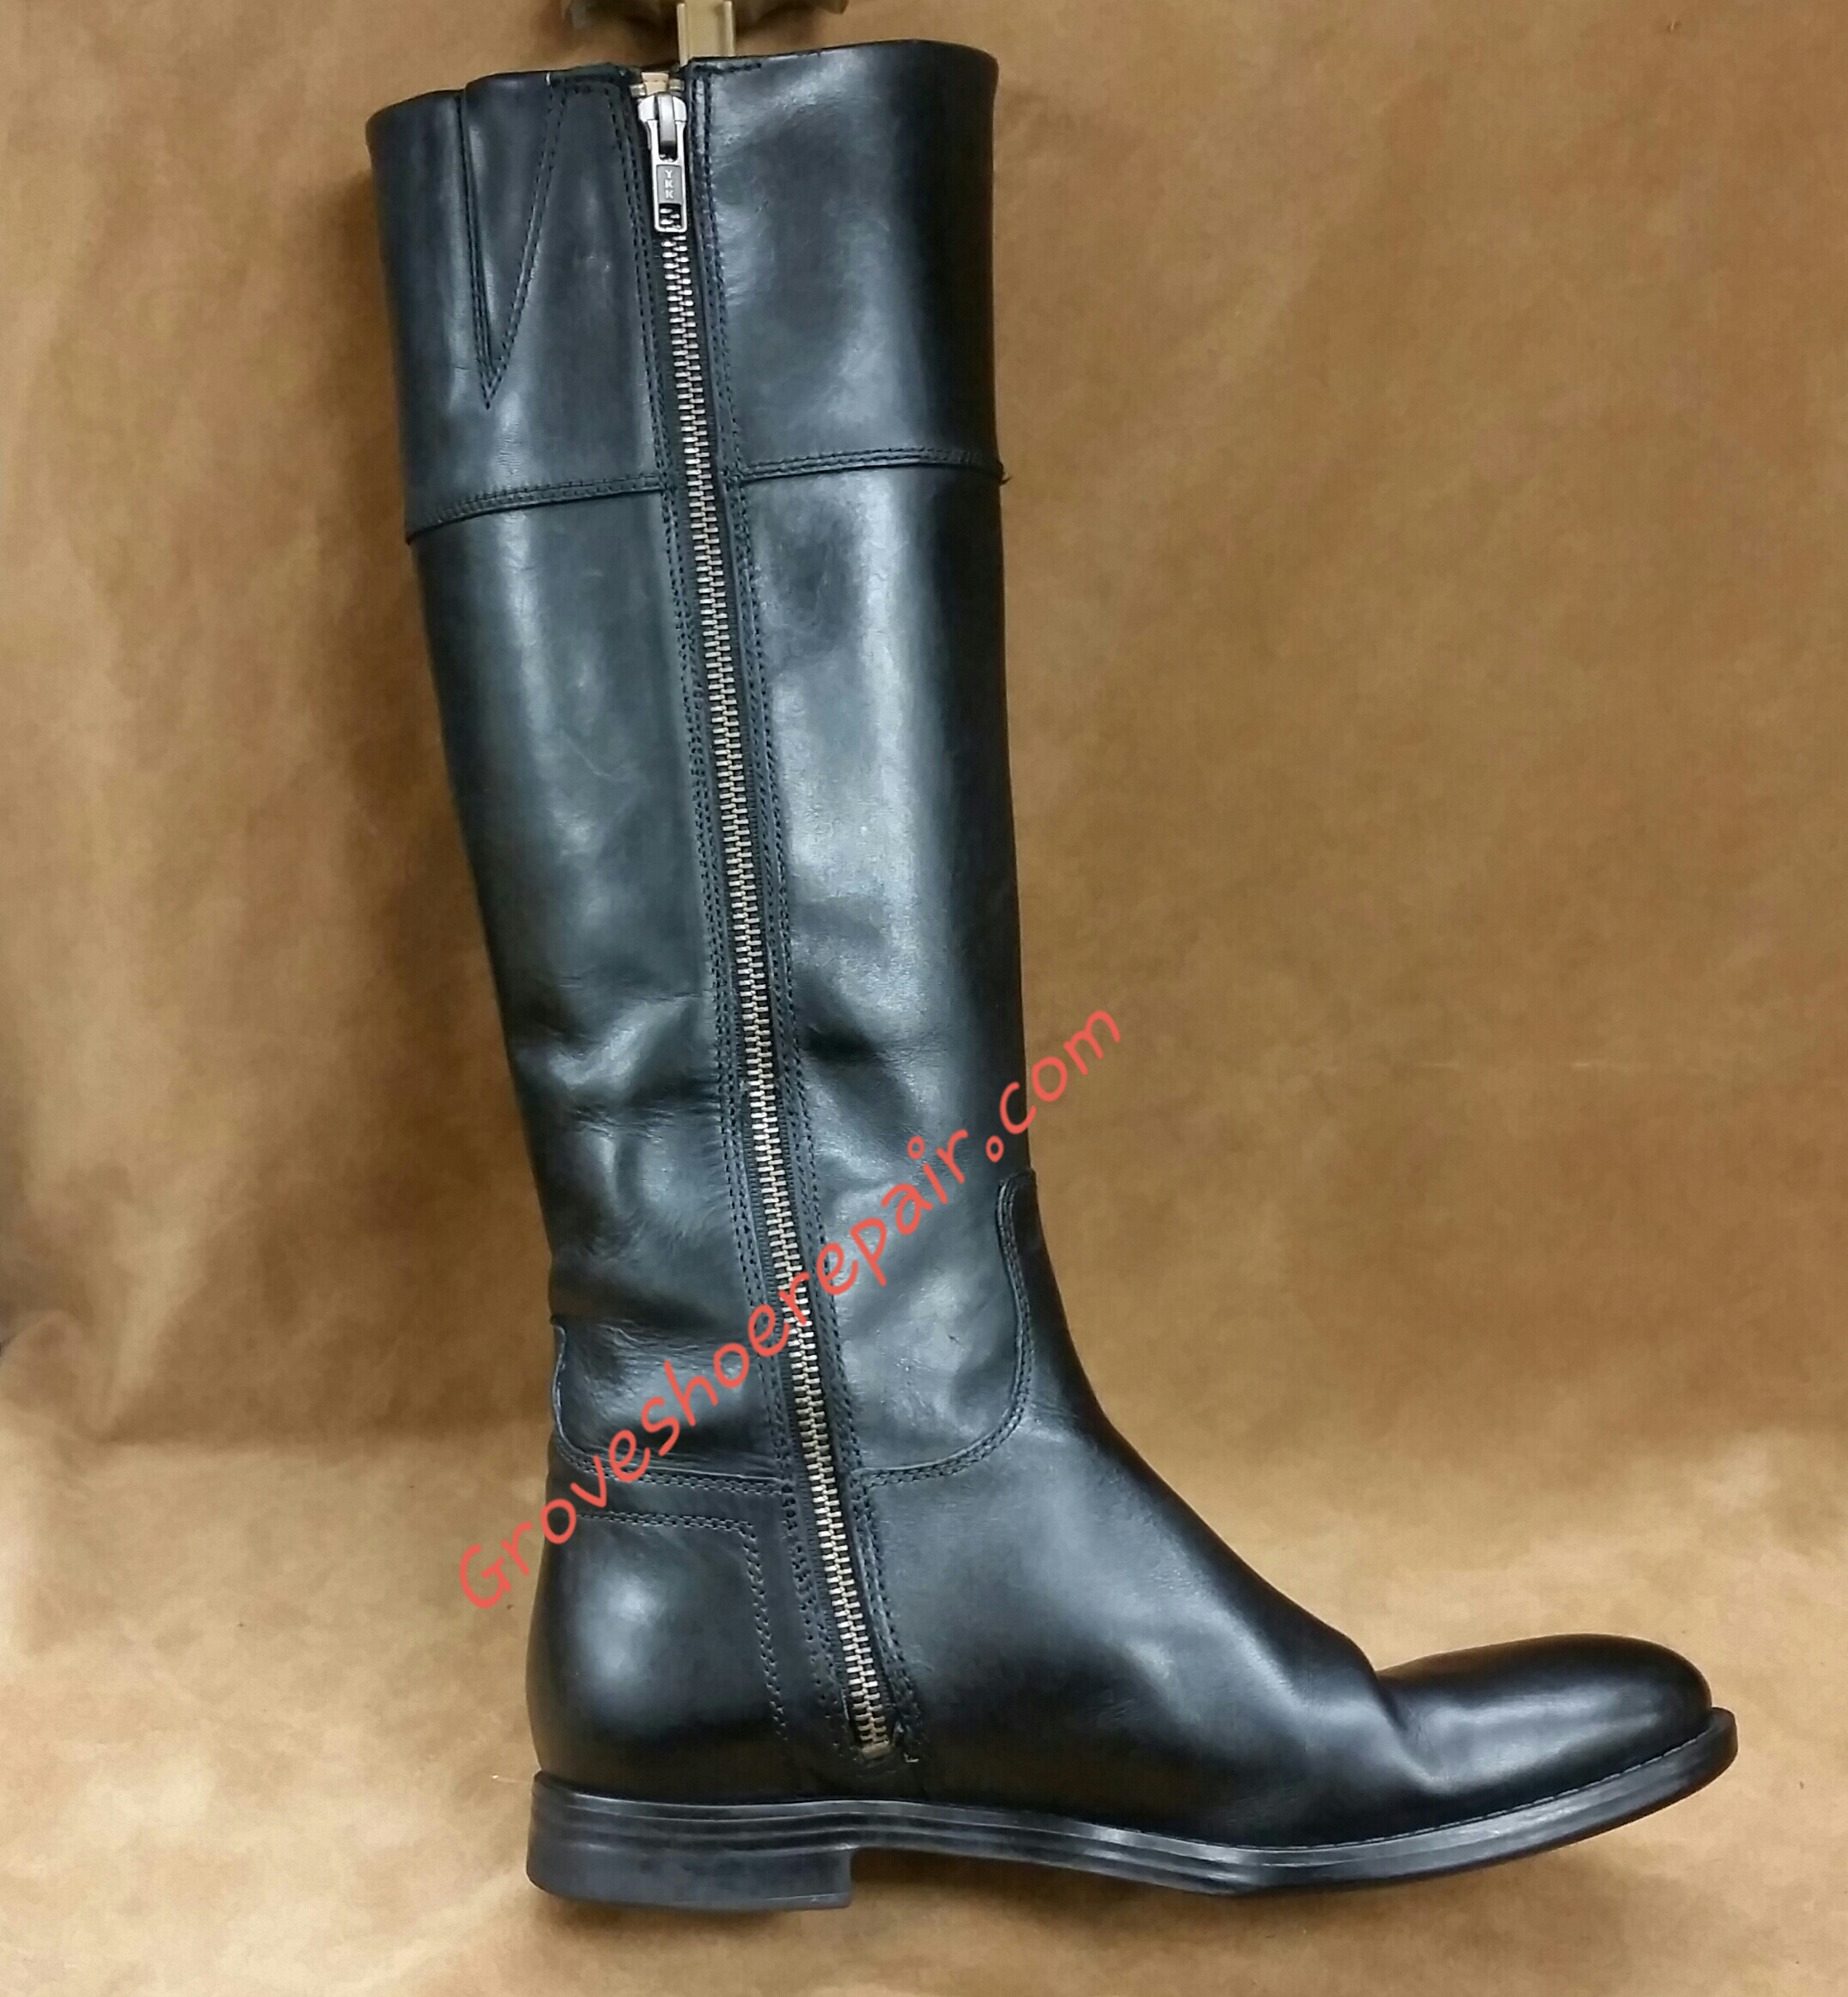 Boot Zipper Replacement Grove Shoe Repair